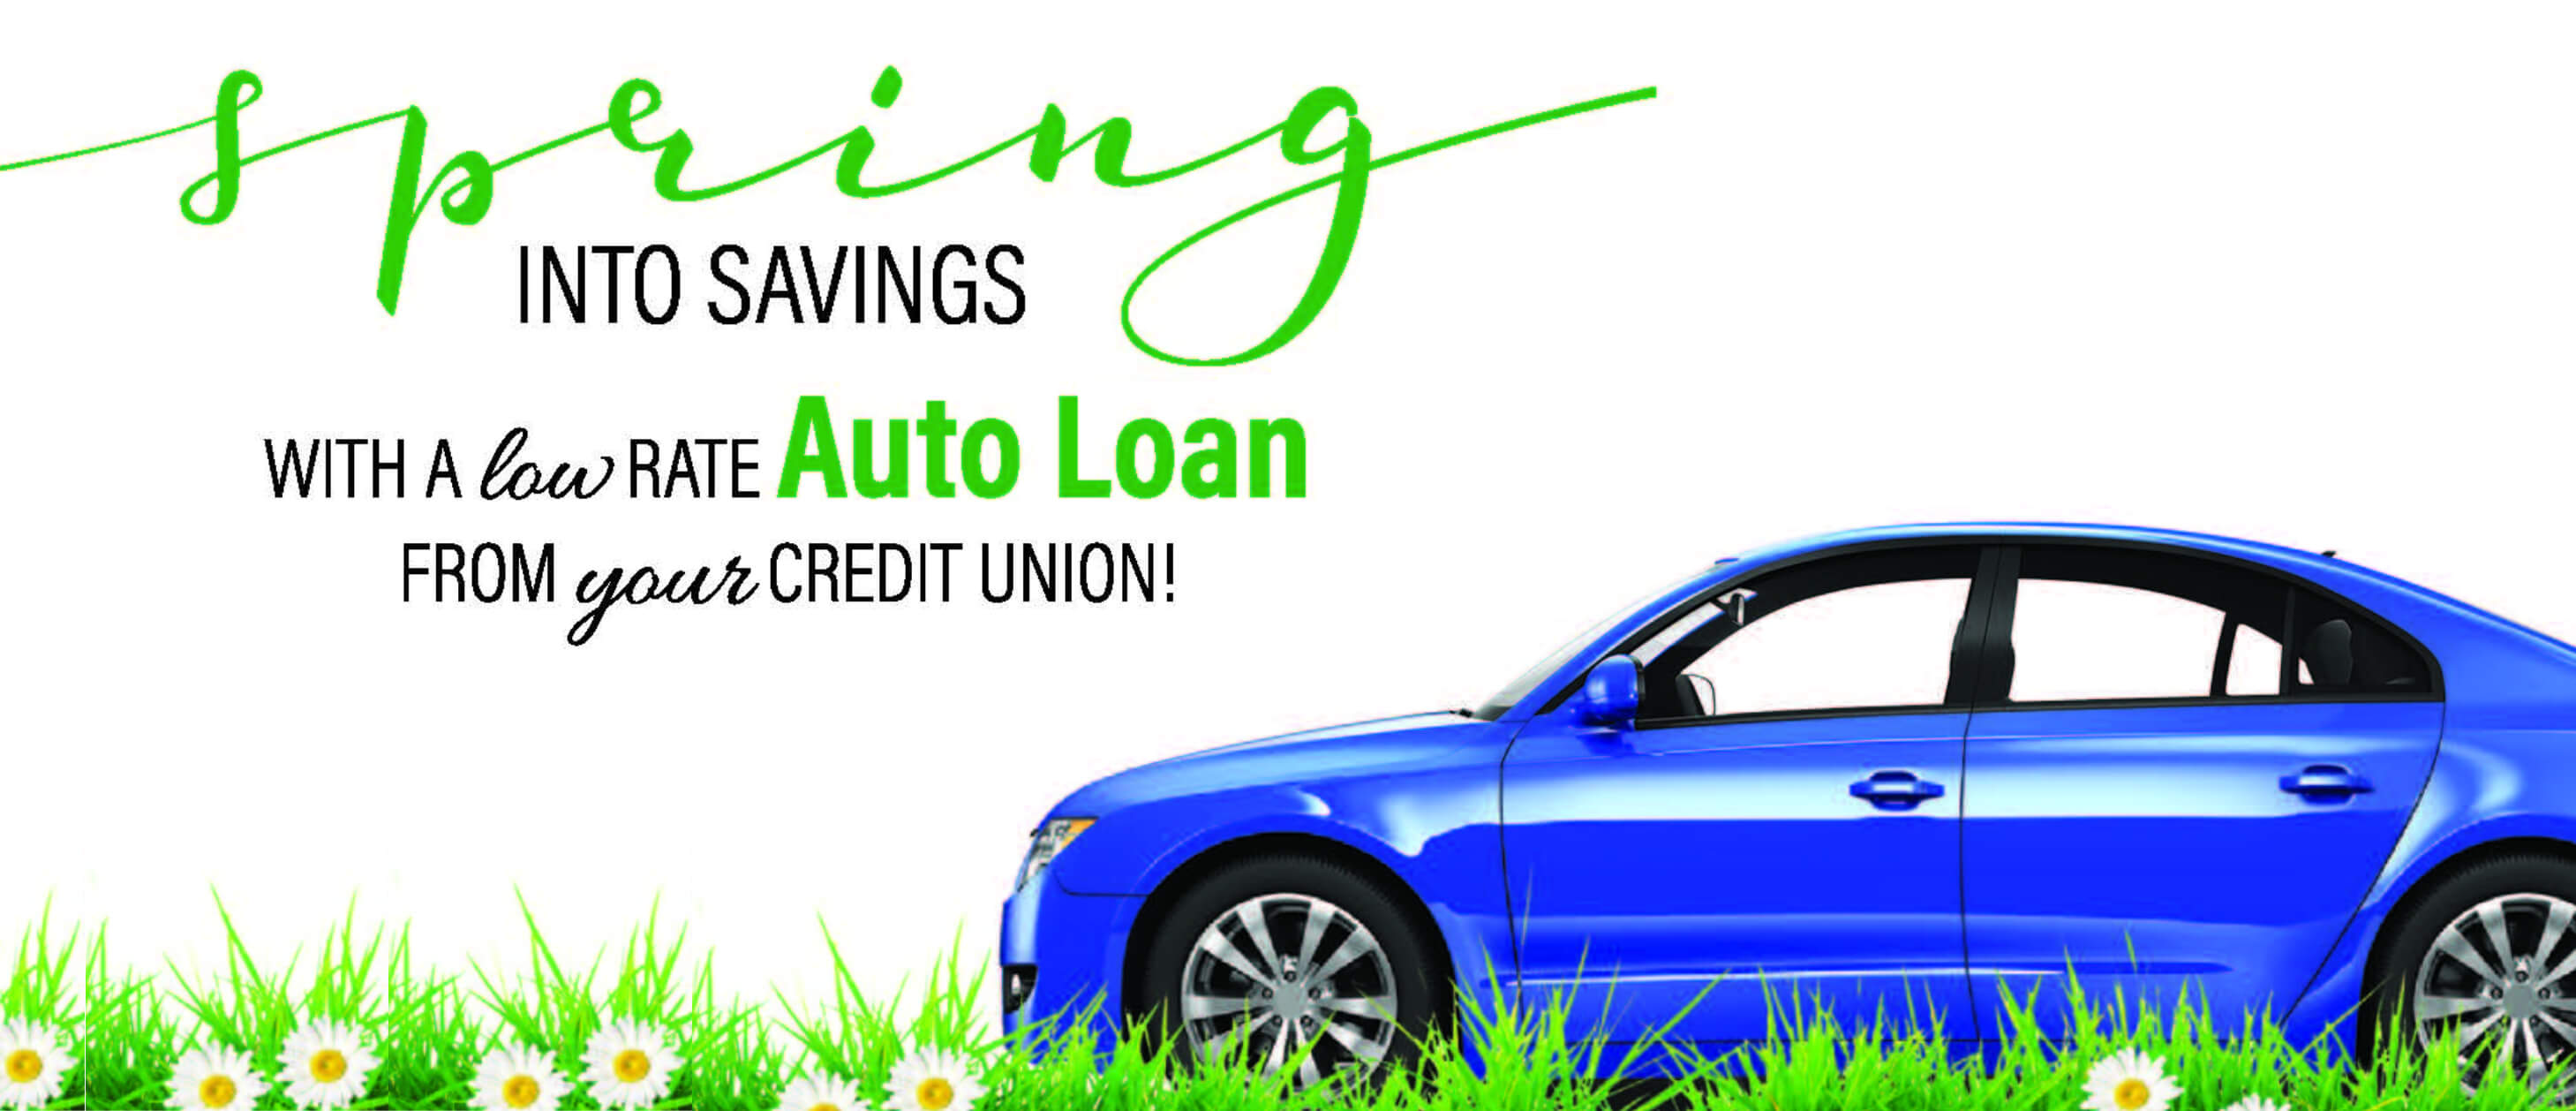 Spring into a Low Rate Auto Loan